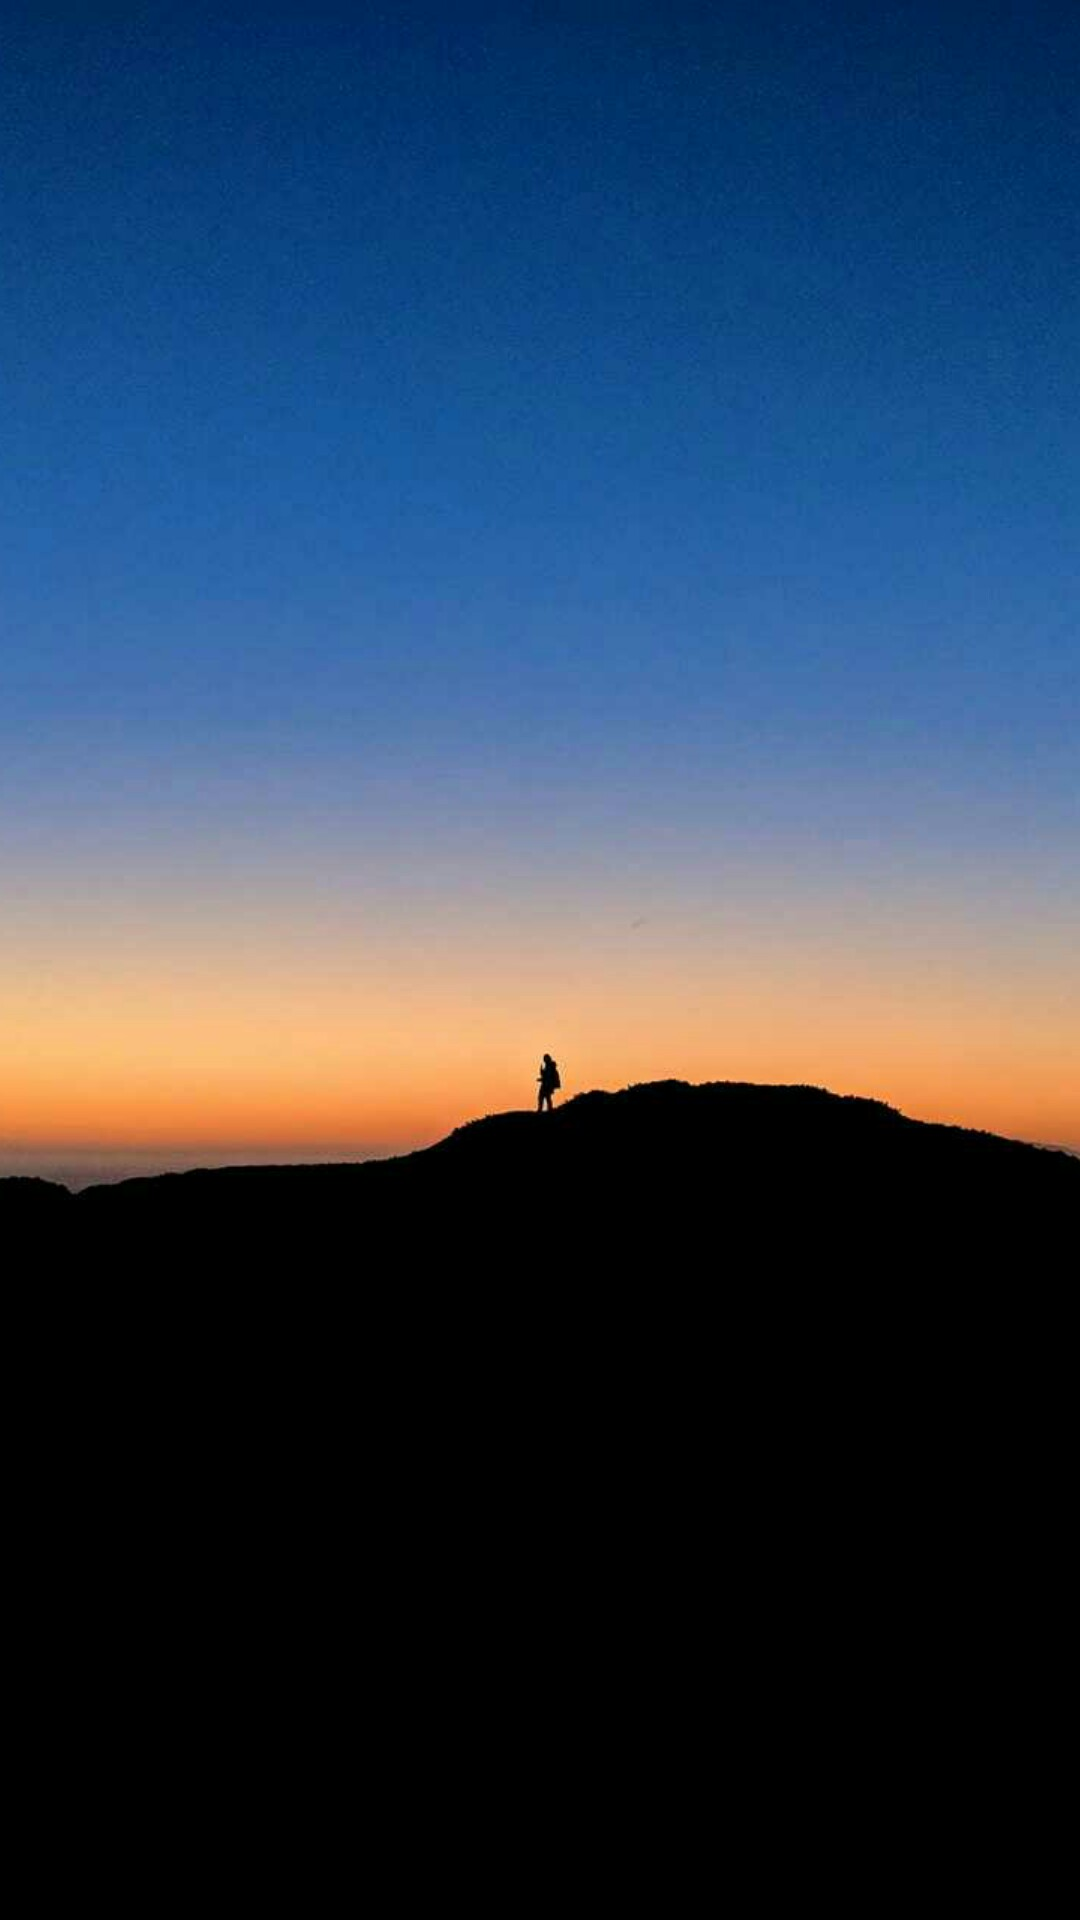 ... High Resolution Nature Wallpaper for Mobile Phone with Picture of Romantic Sunset on Hill